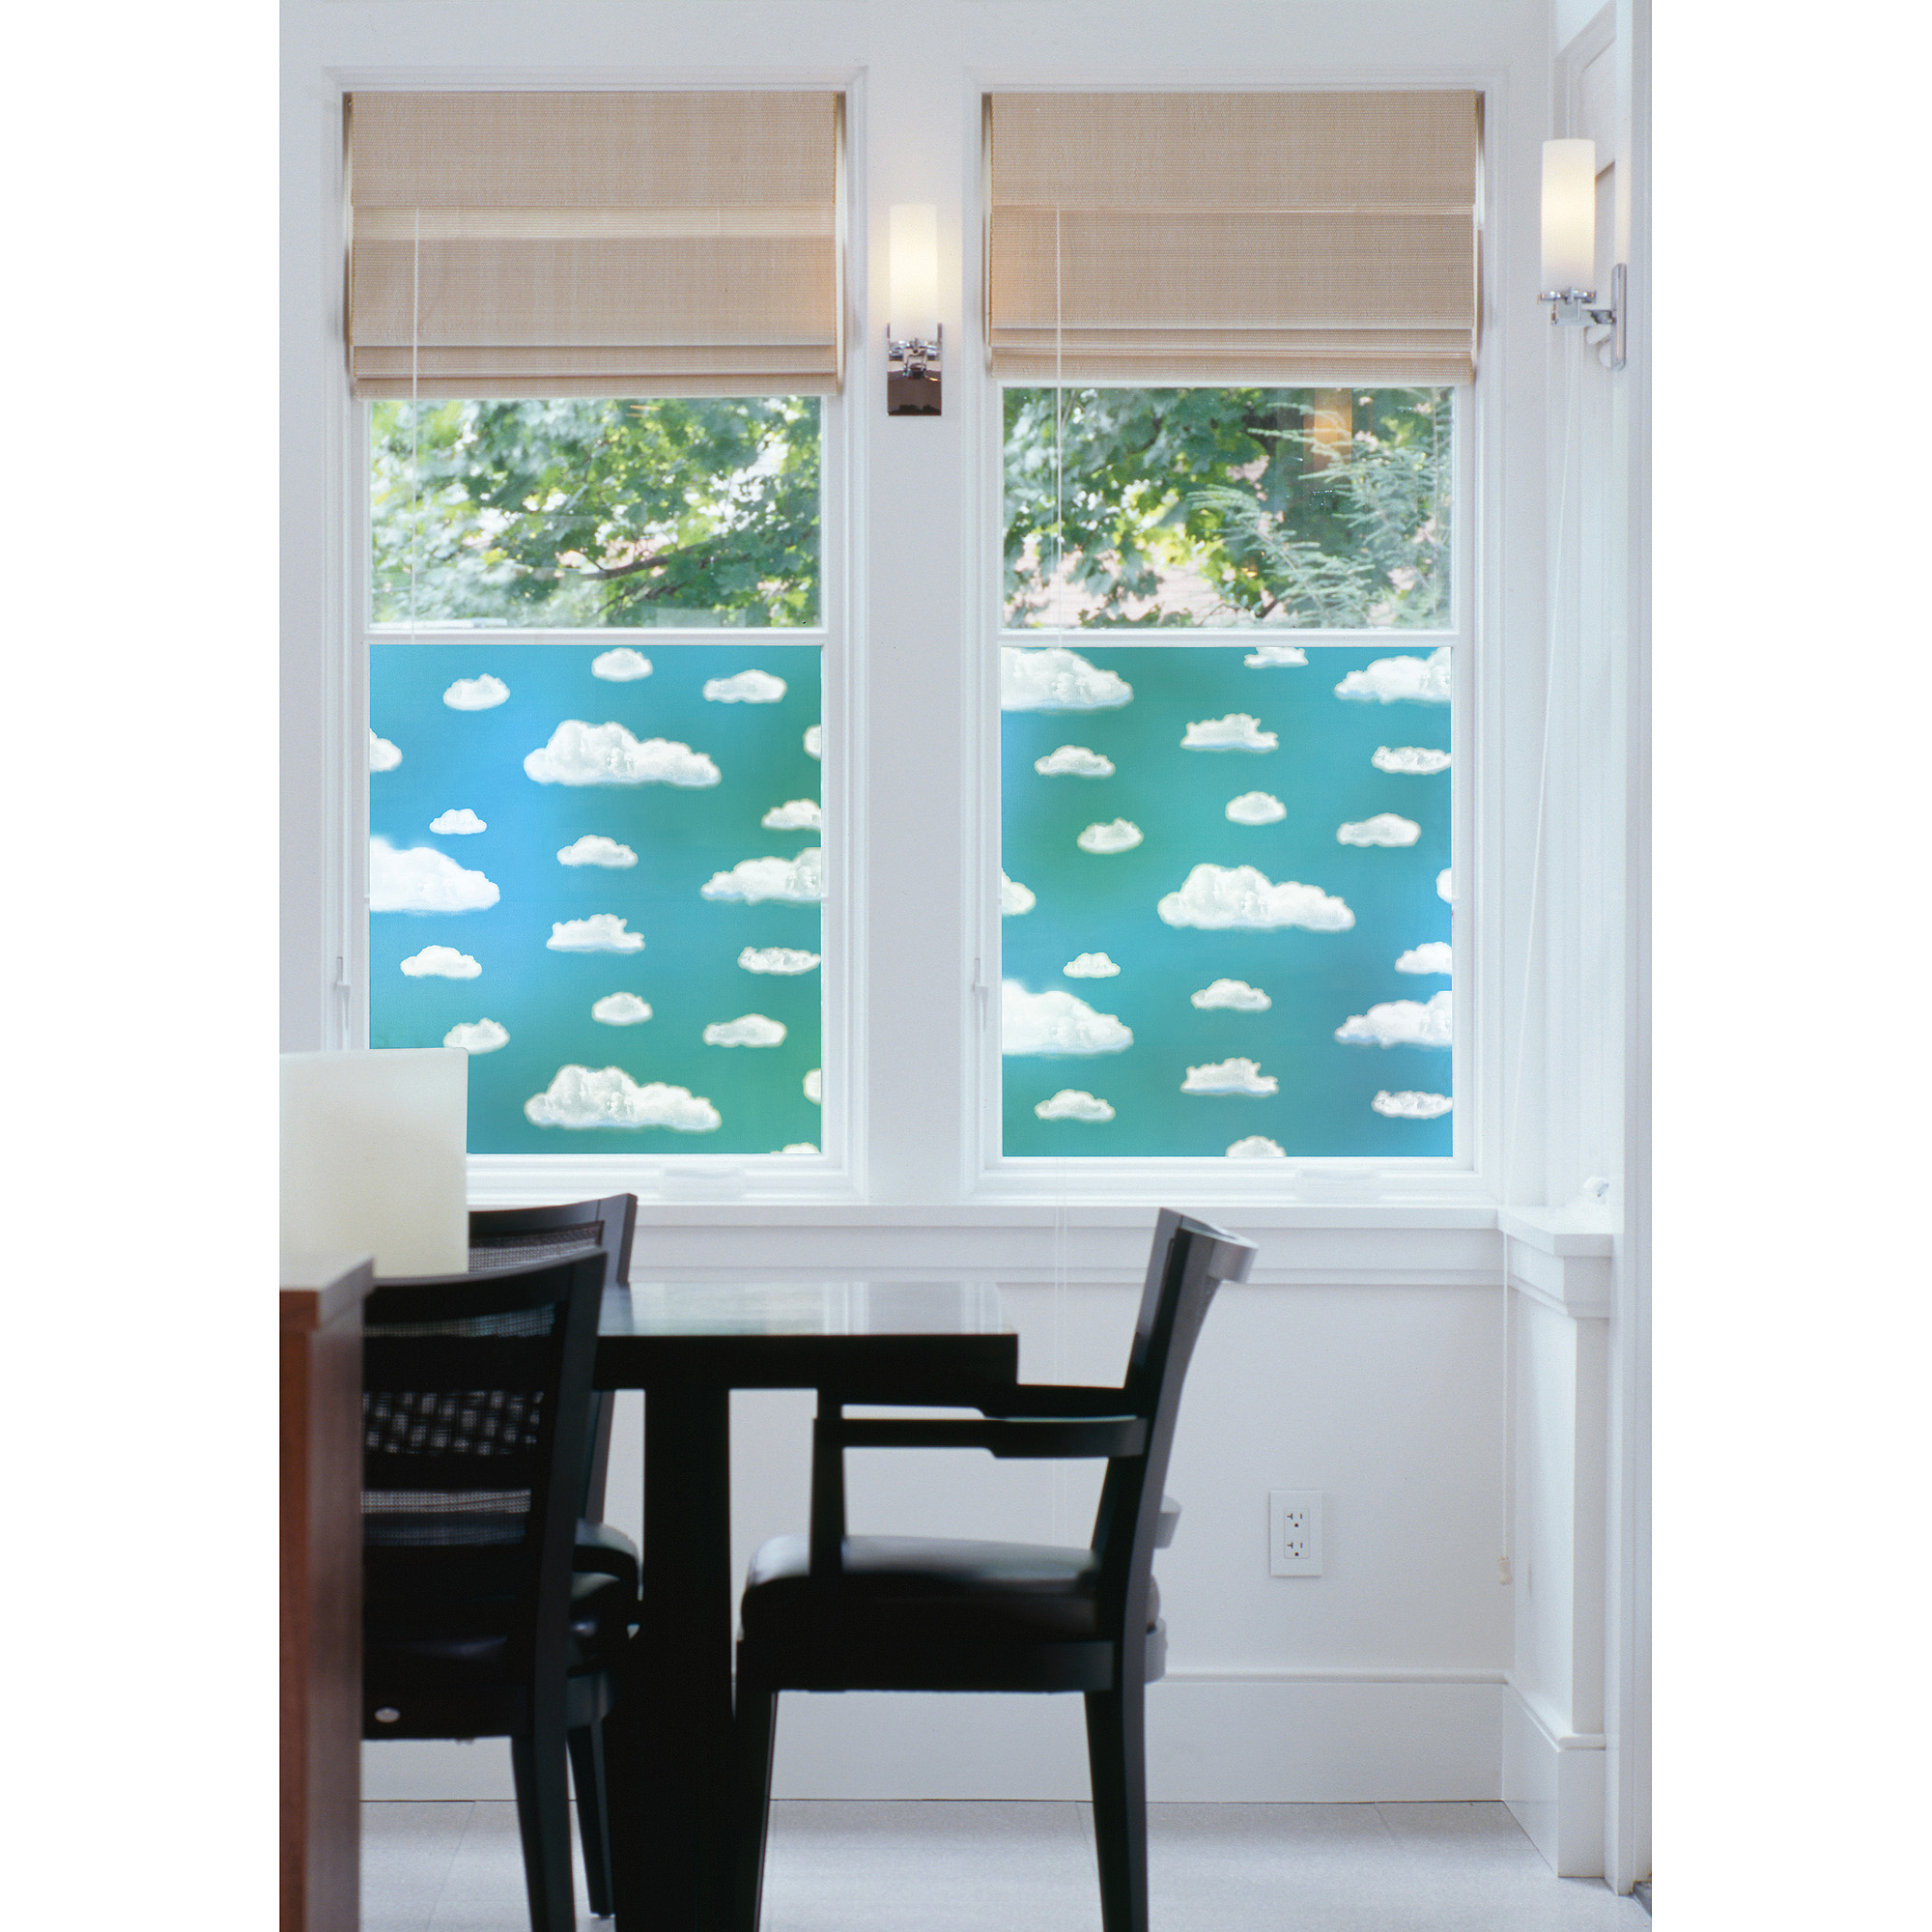 Brewster Moire Peel and Stick Window Film - Walmart.com